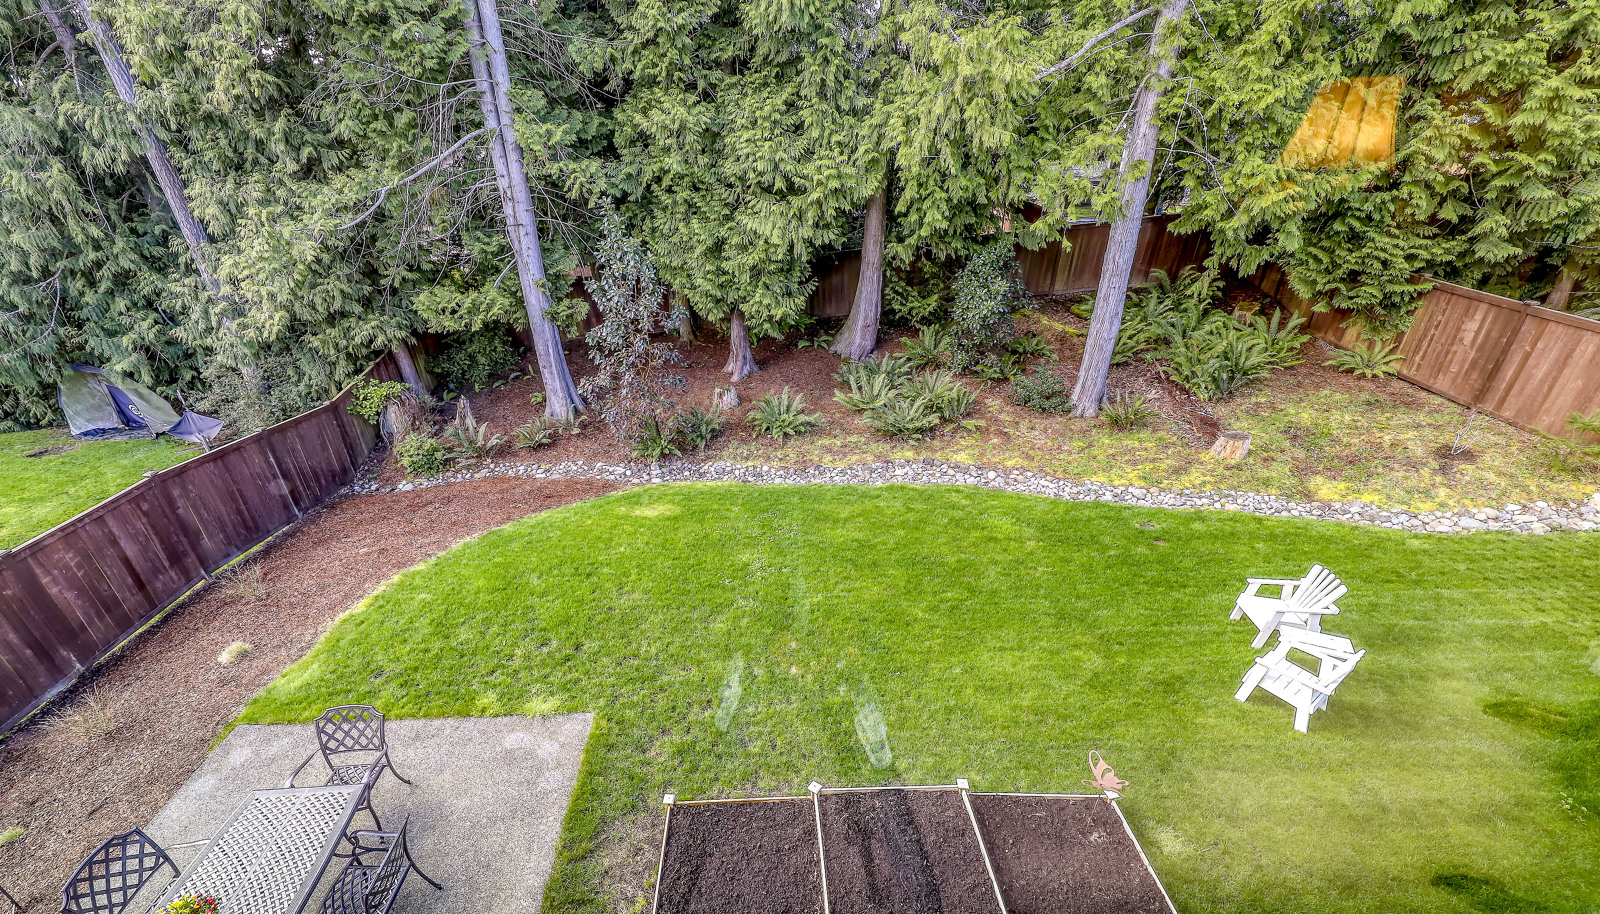 Welcome to your new home and lifestyle in the beloved community of Poulsbo!